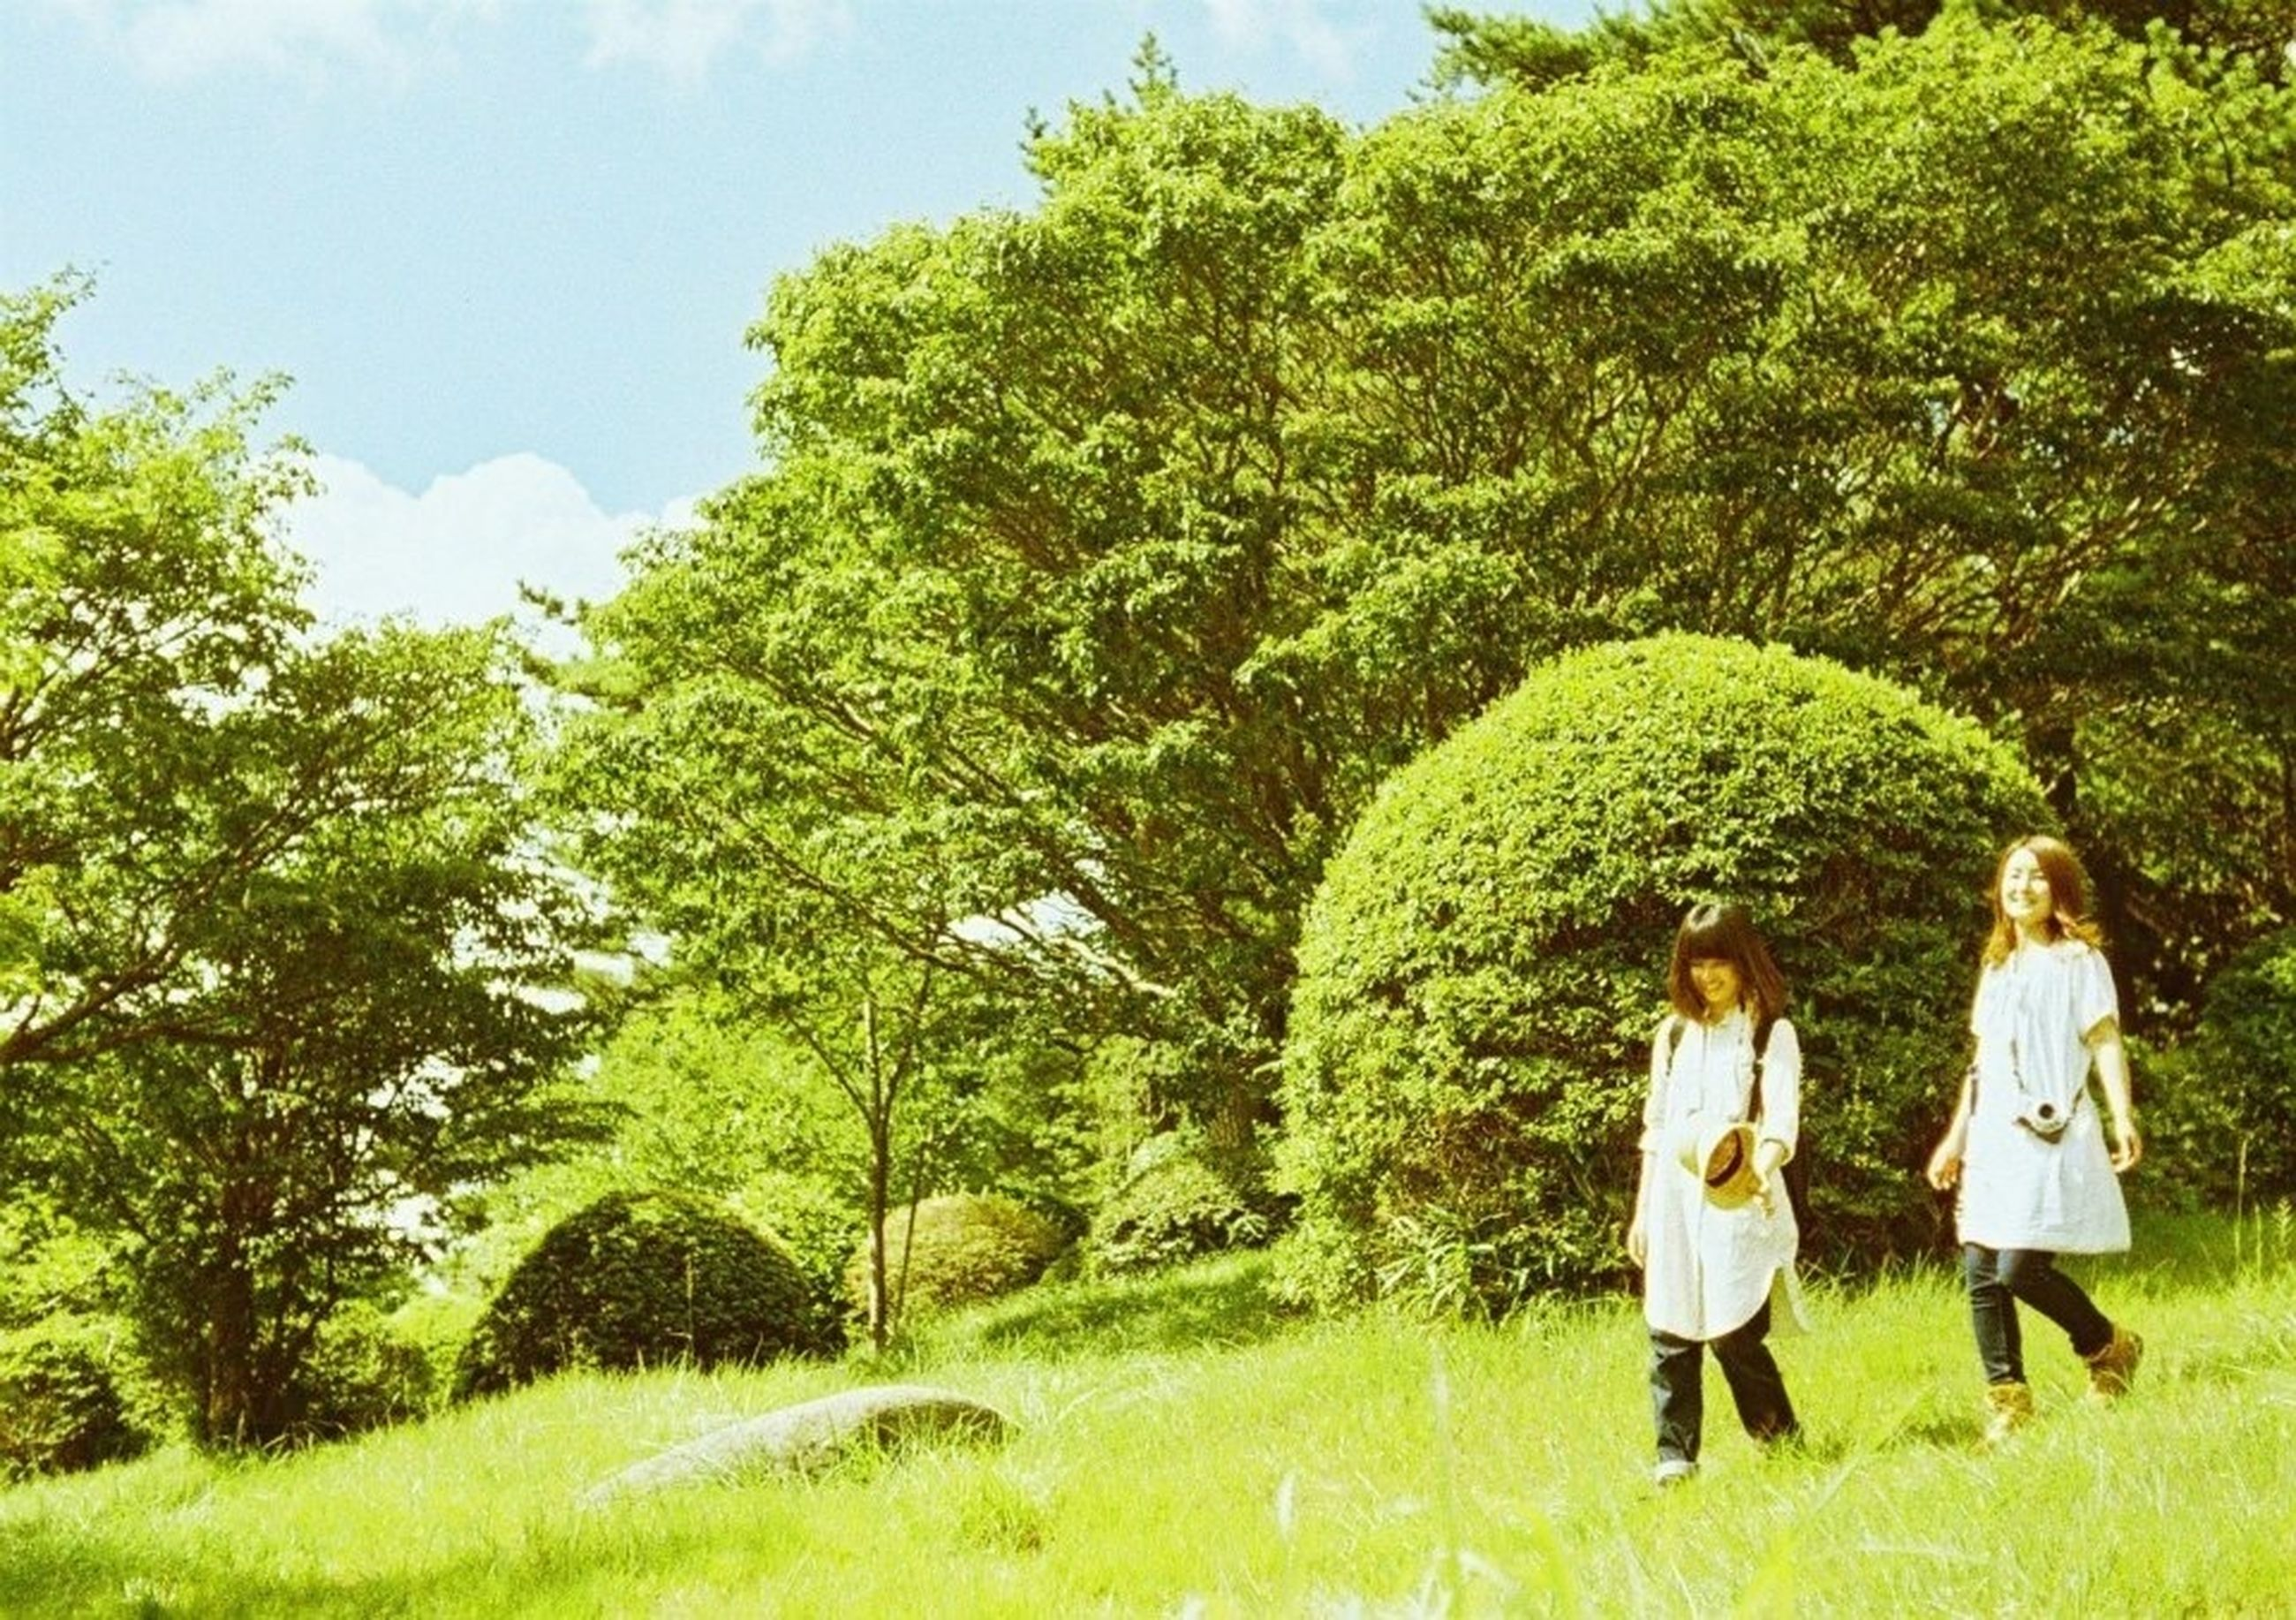 tree, grass, green color, rear view, lifestyles, growth, leisure activity, field, full length, men, standing, casual clothing, grassy, nature, person, tranquility, park - man made space, green